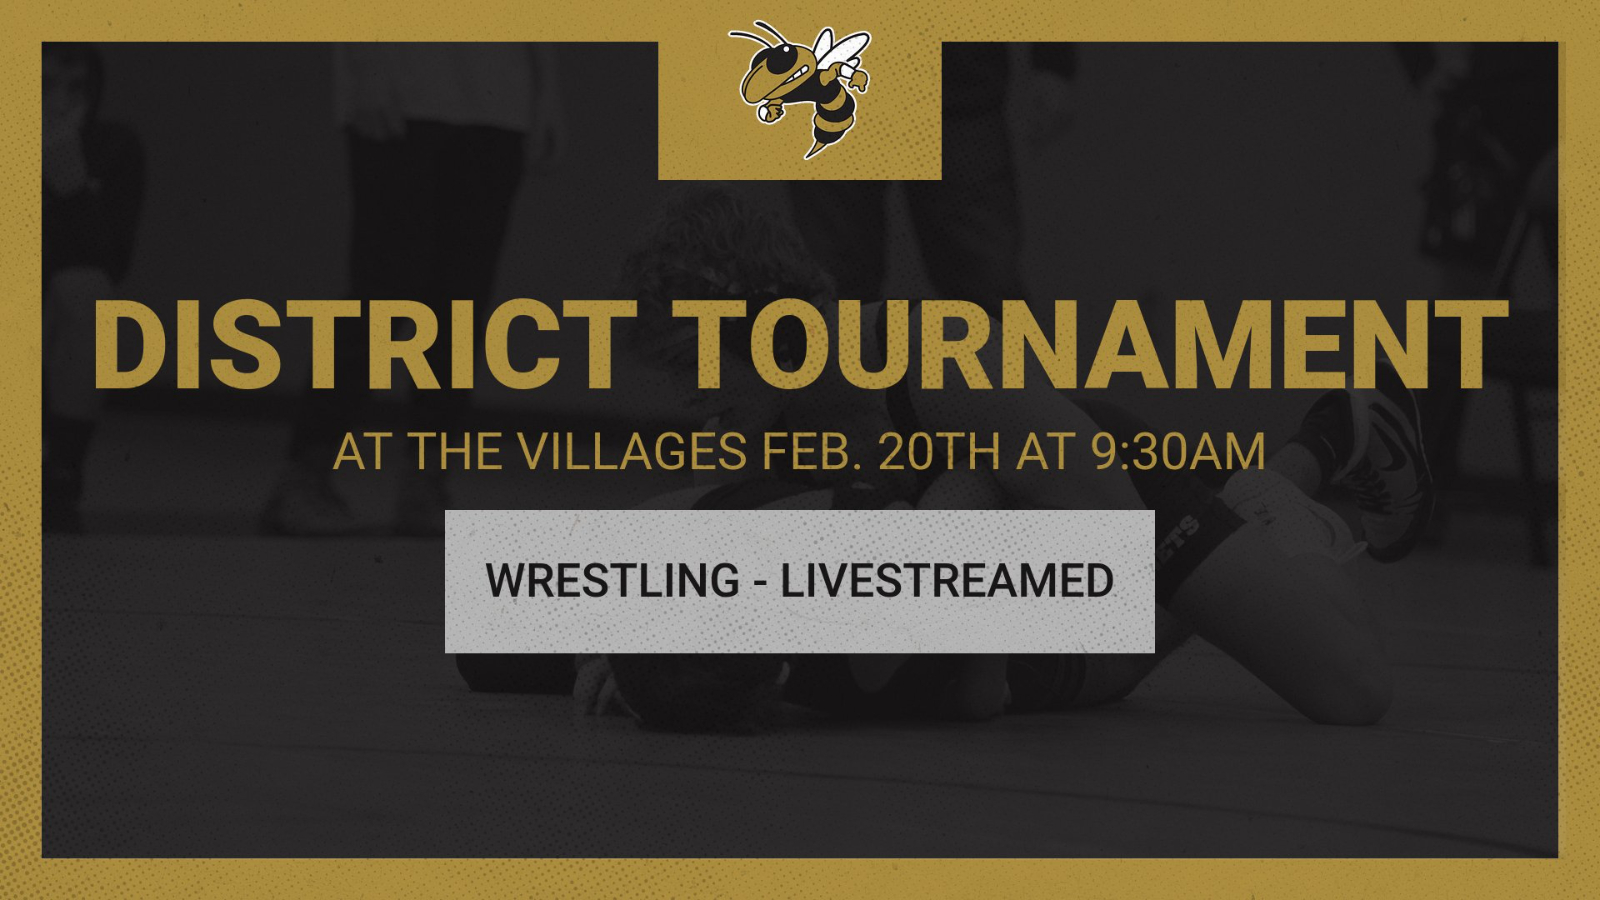 Wrestling District Tournament at The Villages Feb. 20th – LIVESTREAMED